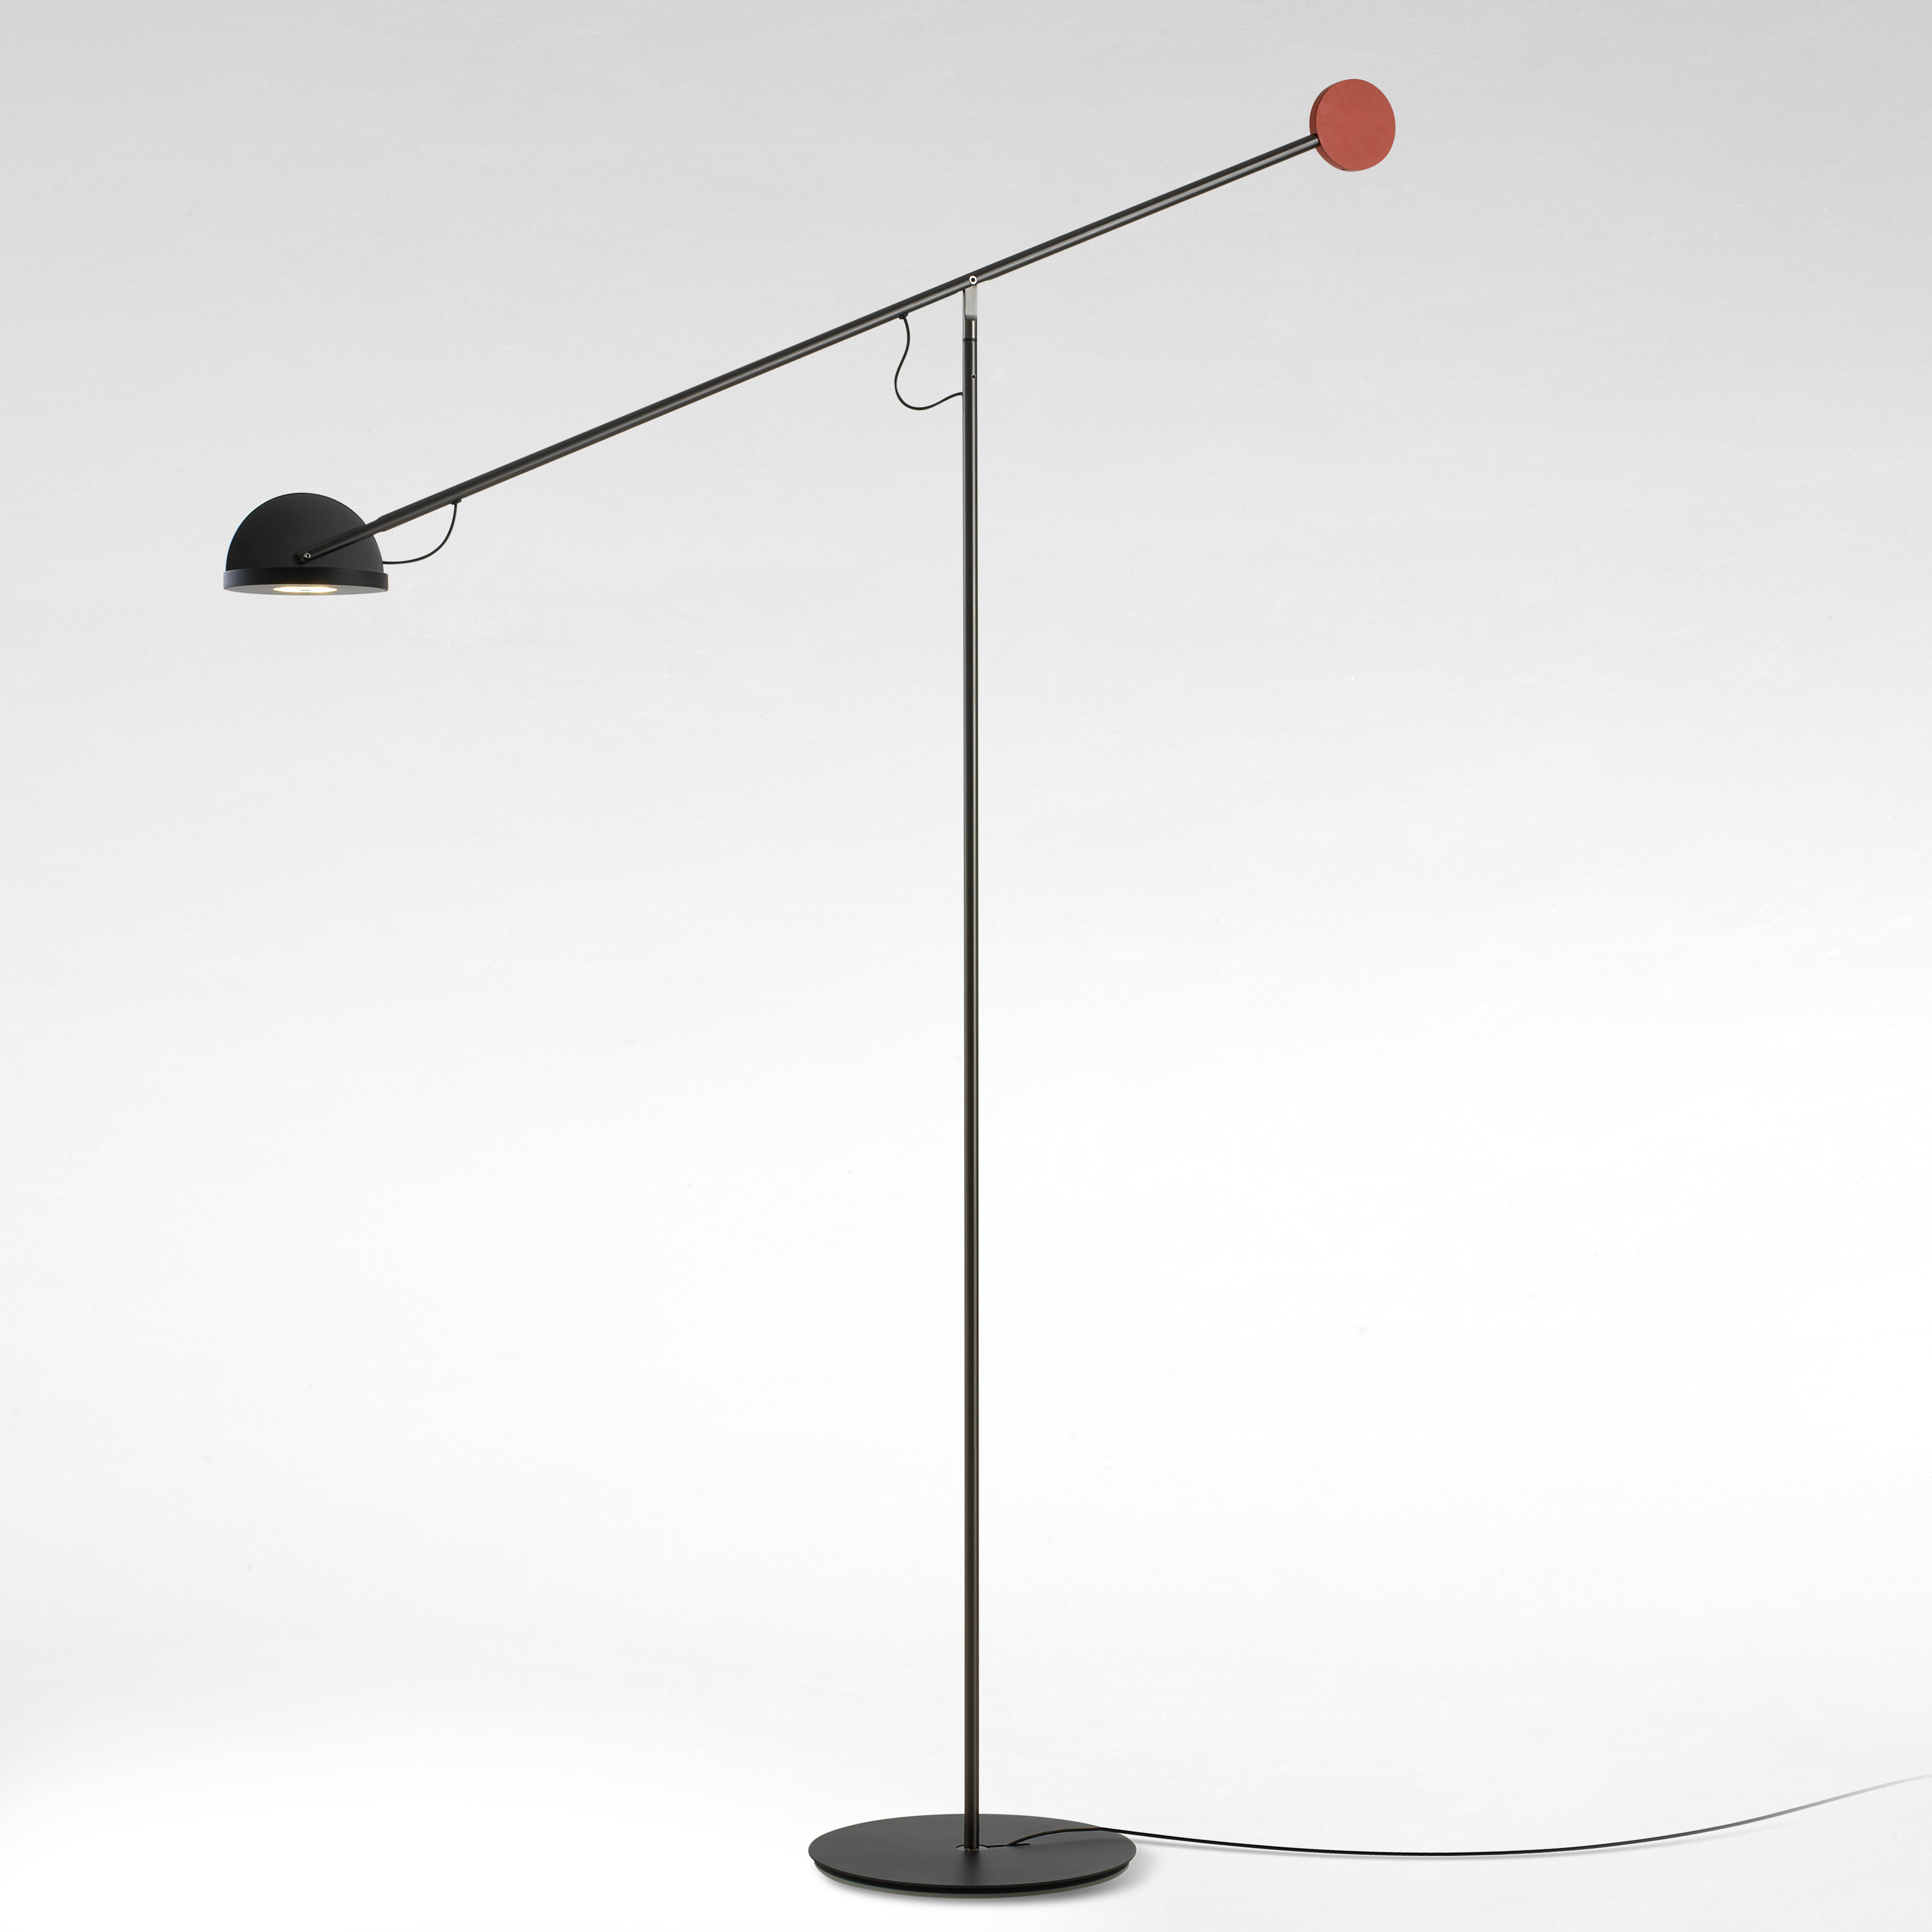 Lighting - Floor lamps - Copérnica Floor lamp - / H 130 cm by Marset - Graphite / Black & red - Aluminium, Nickel, Steel